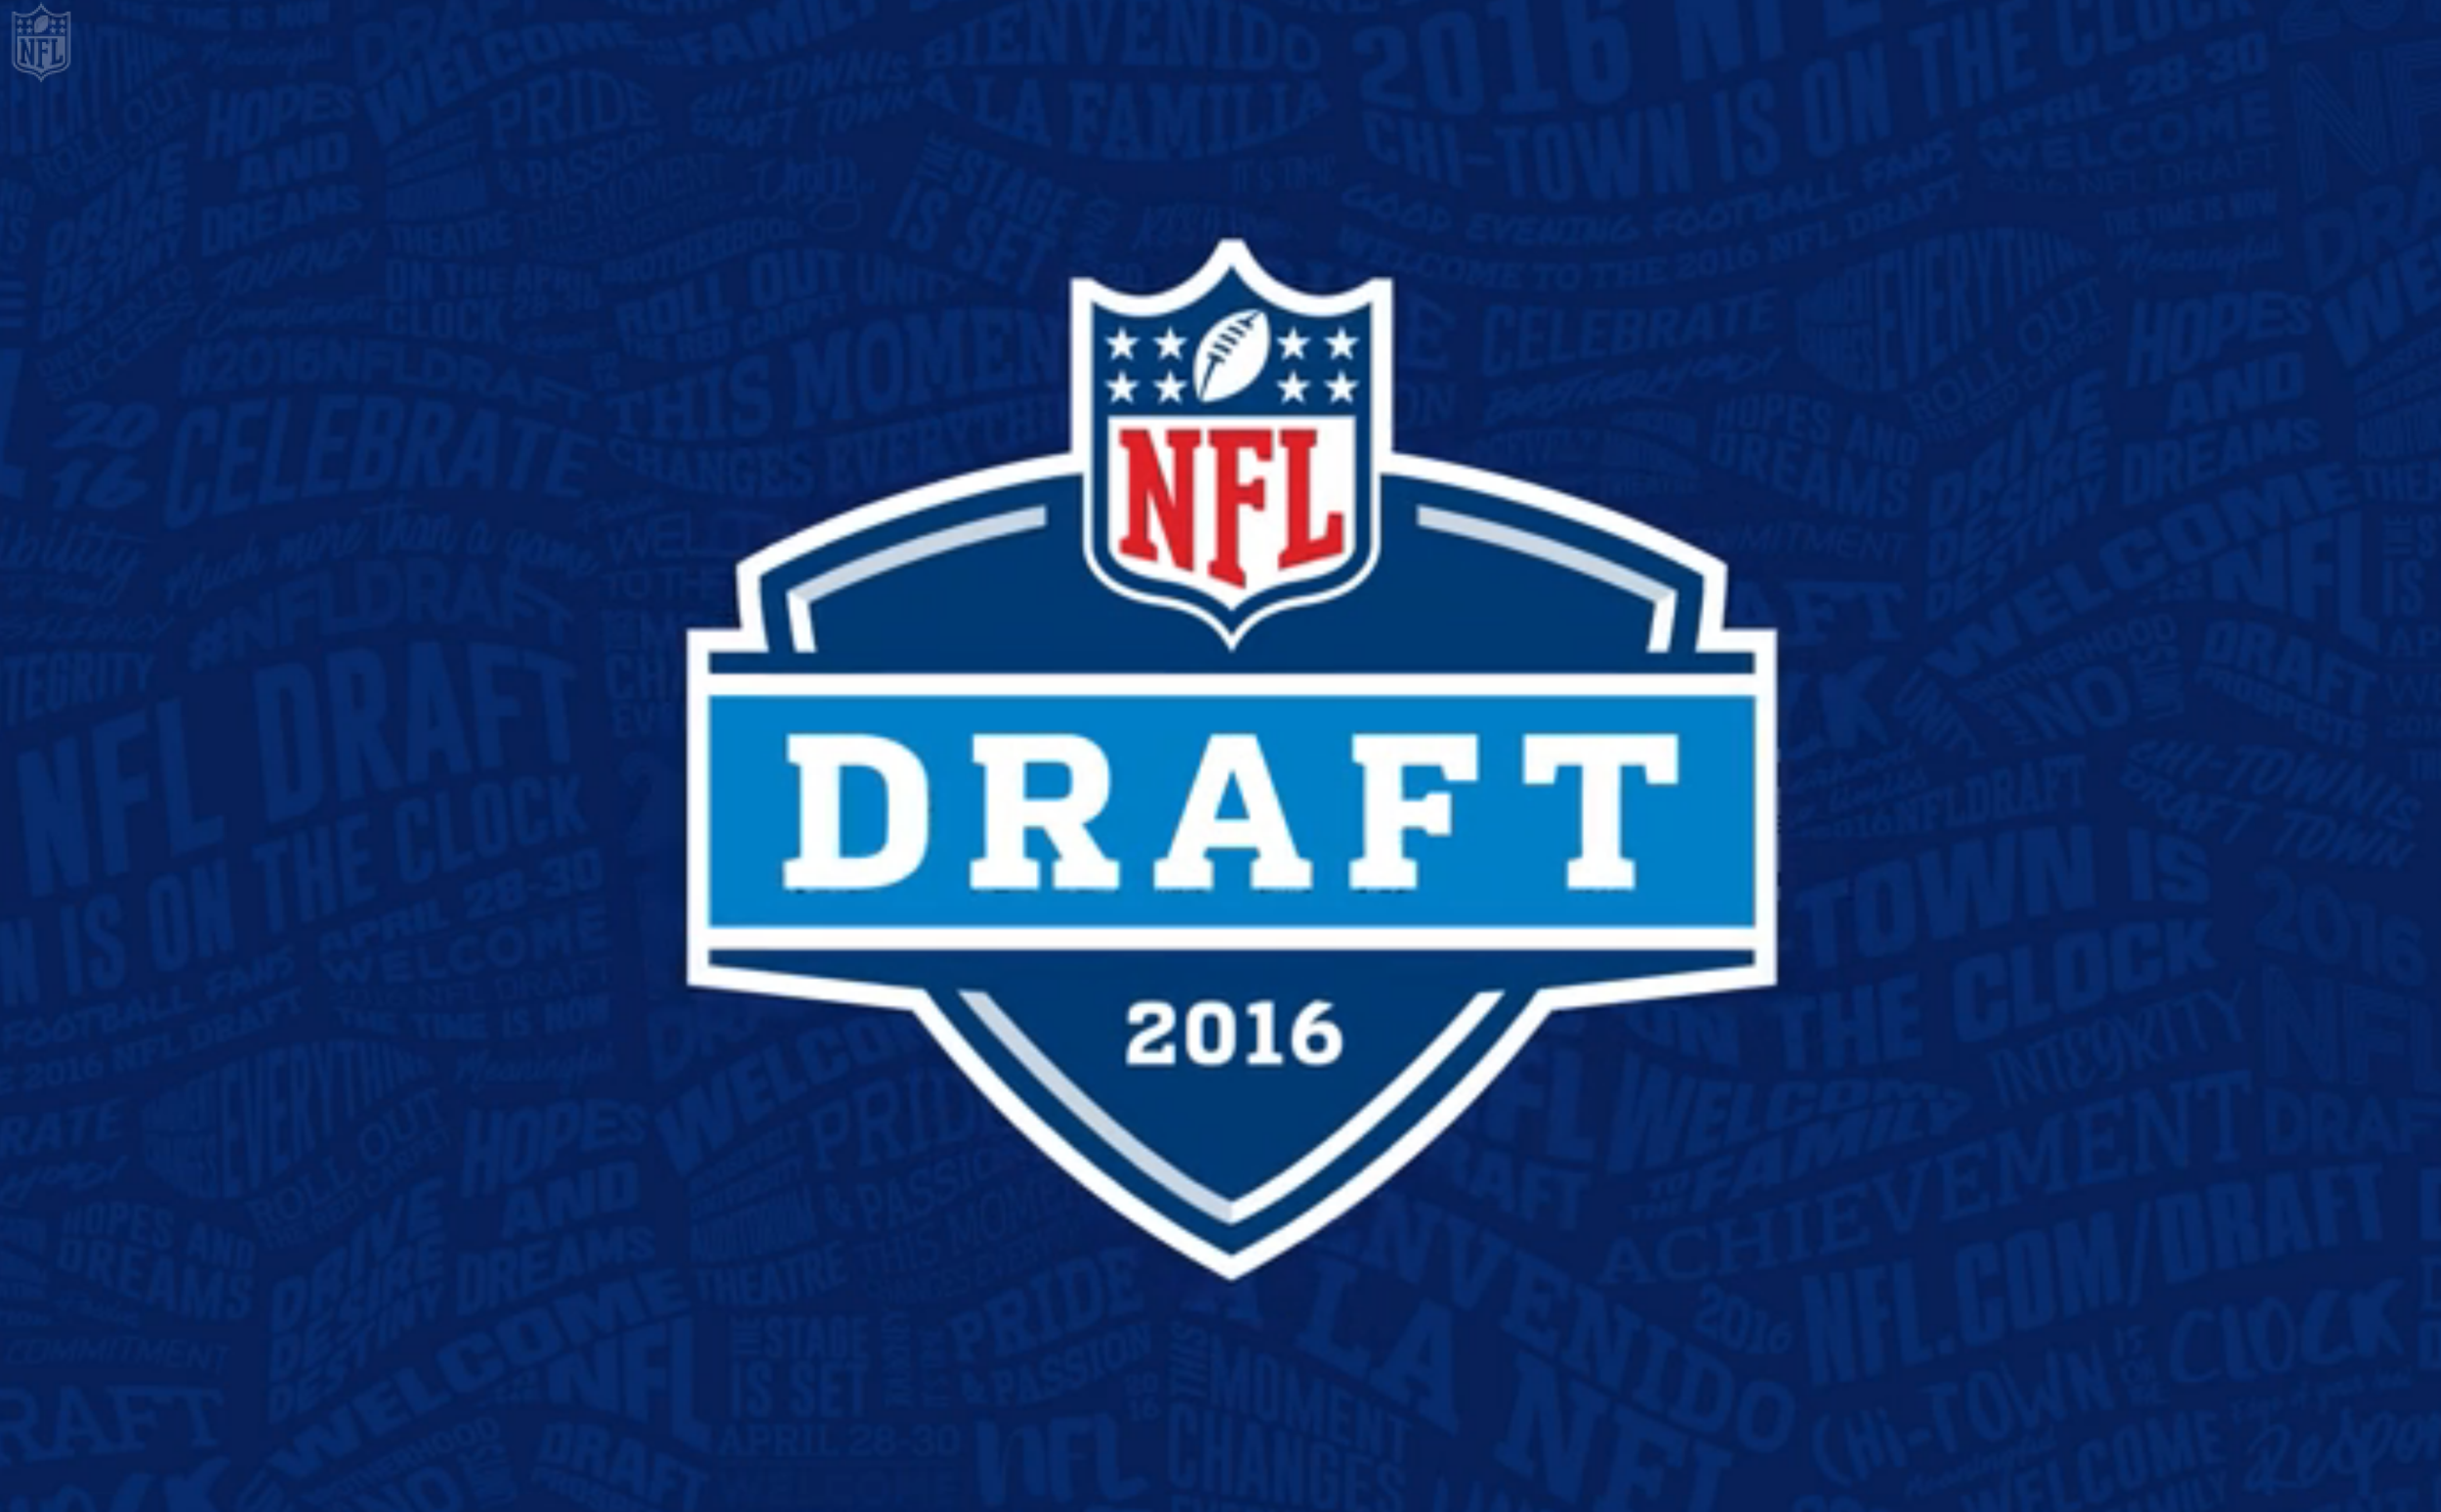 NFL DRAFT 2016 - PROUD FAMILIES    Role: Director & Producer    Agency: MKTG   7 // 30 Second Commercial Spots & 30+ Digital Videos